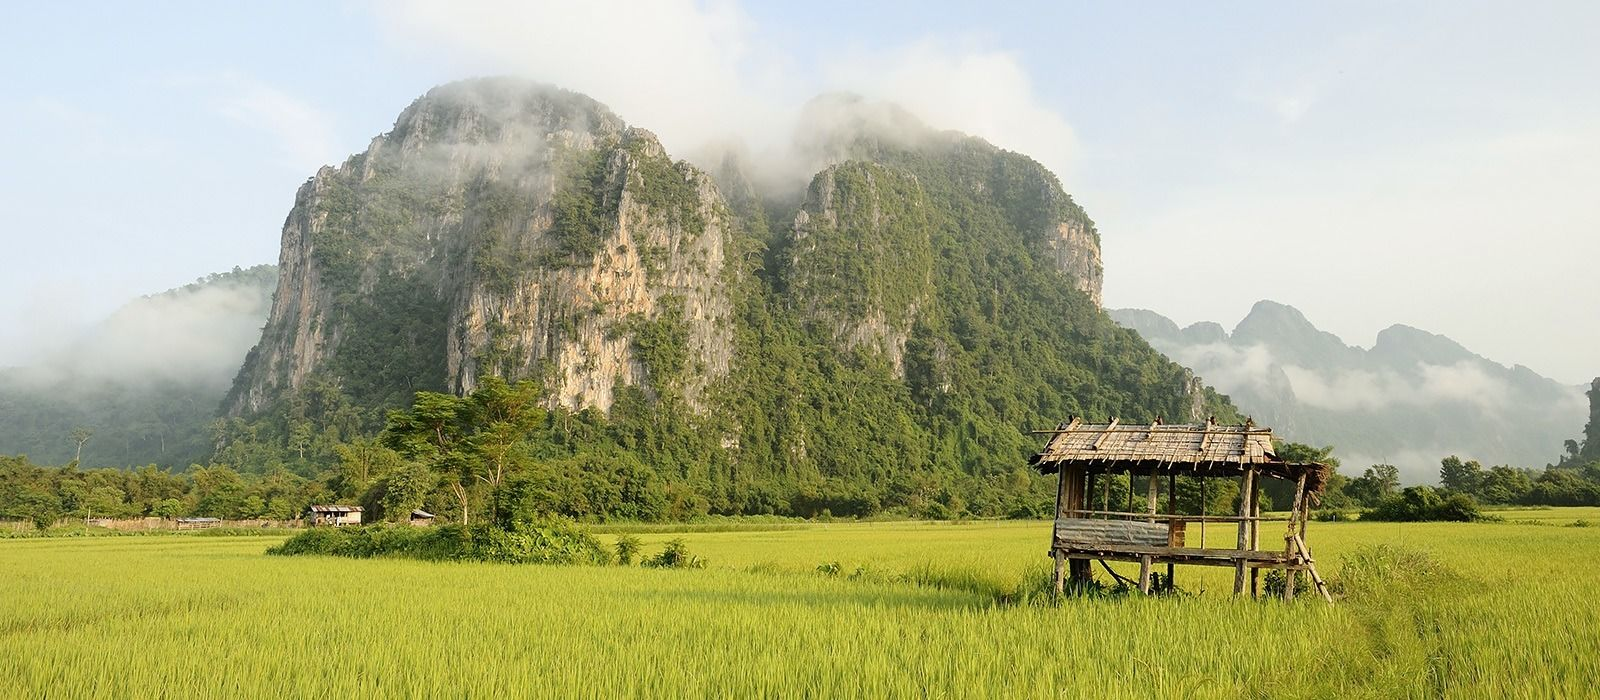 Live Laos: From Monks to Mekong Tour Trip 6